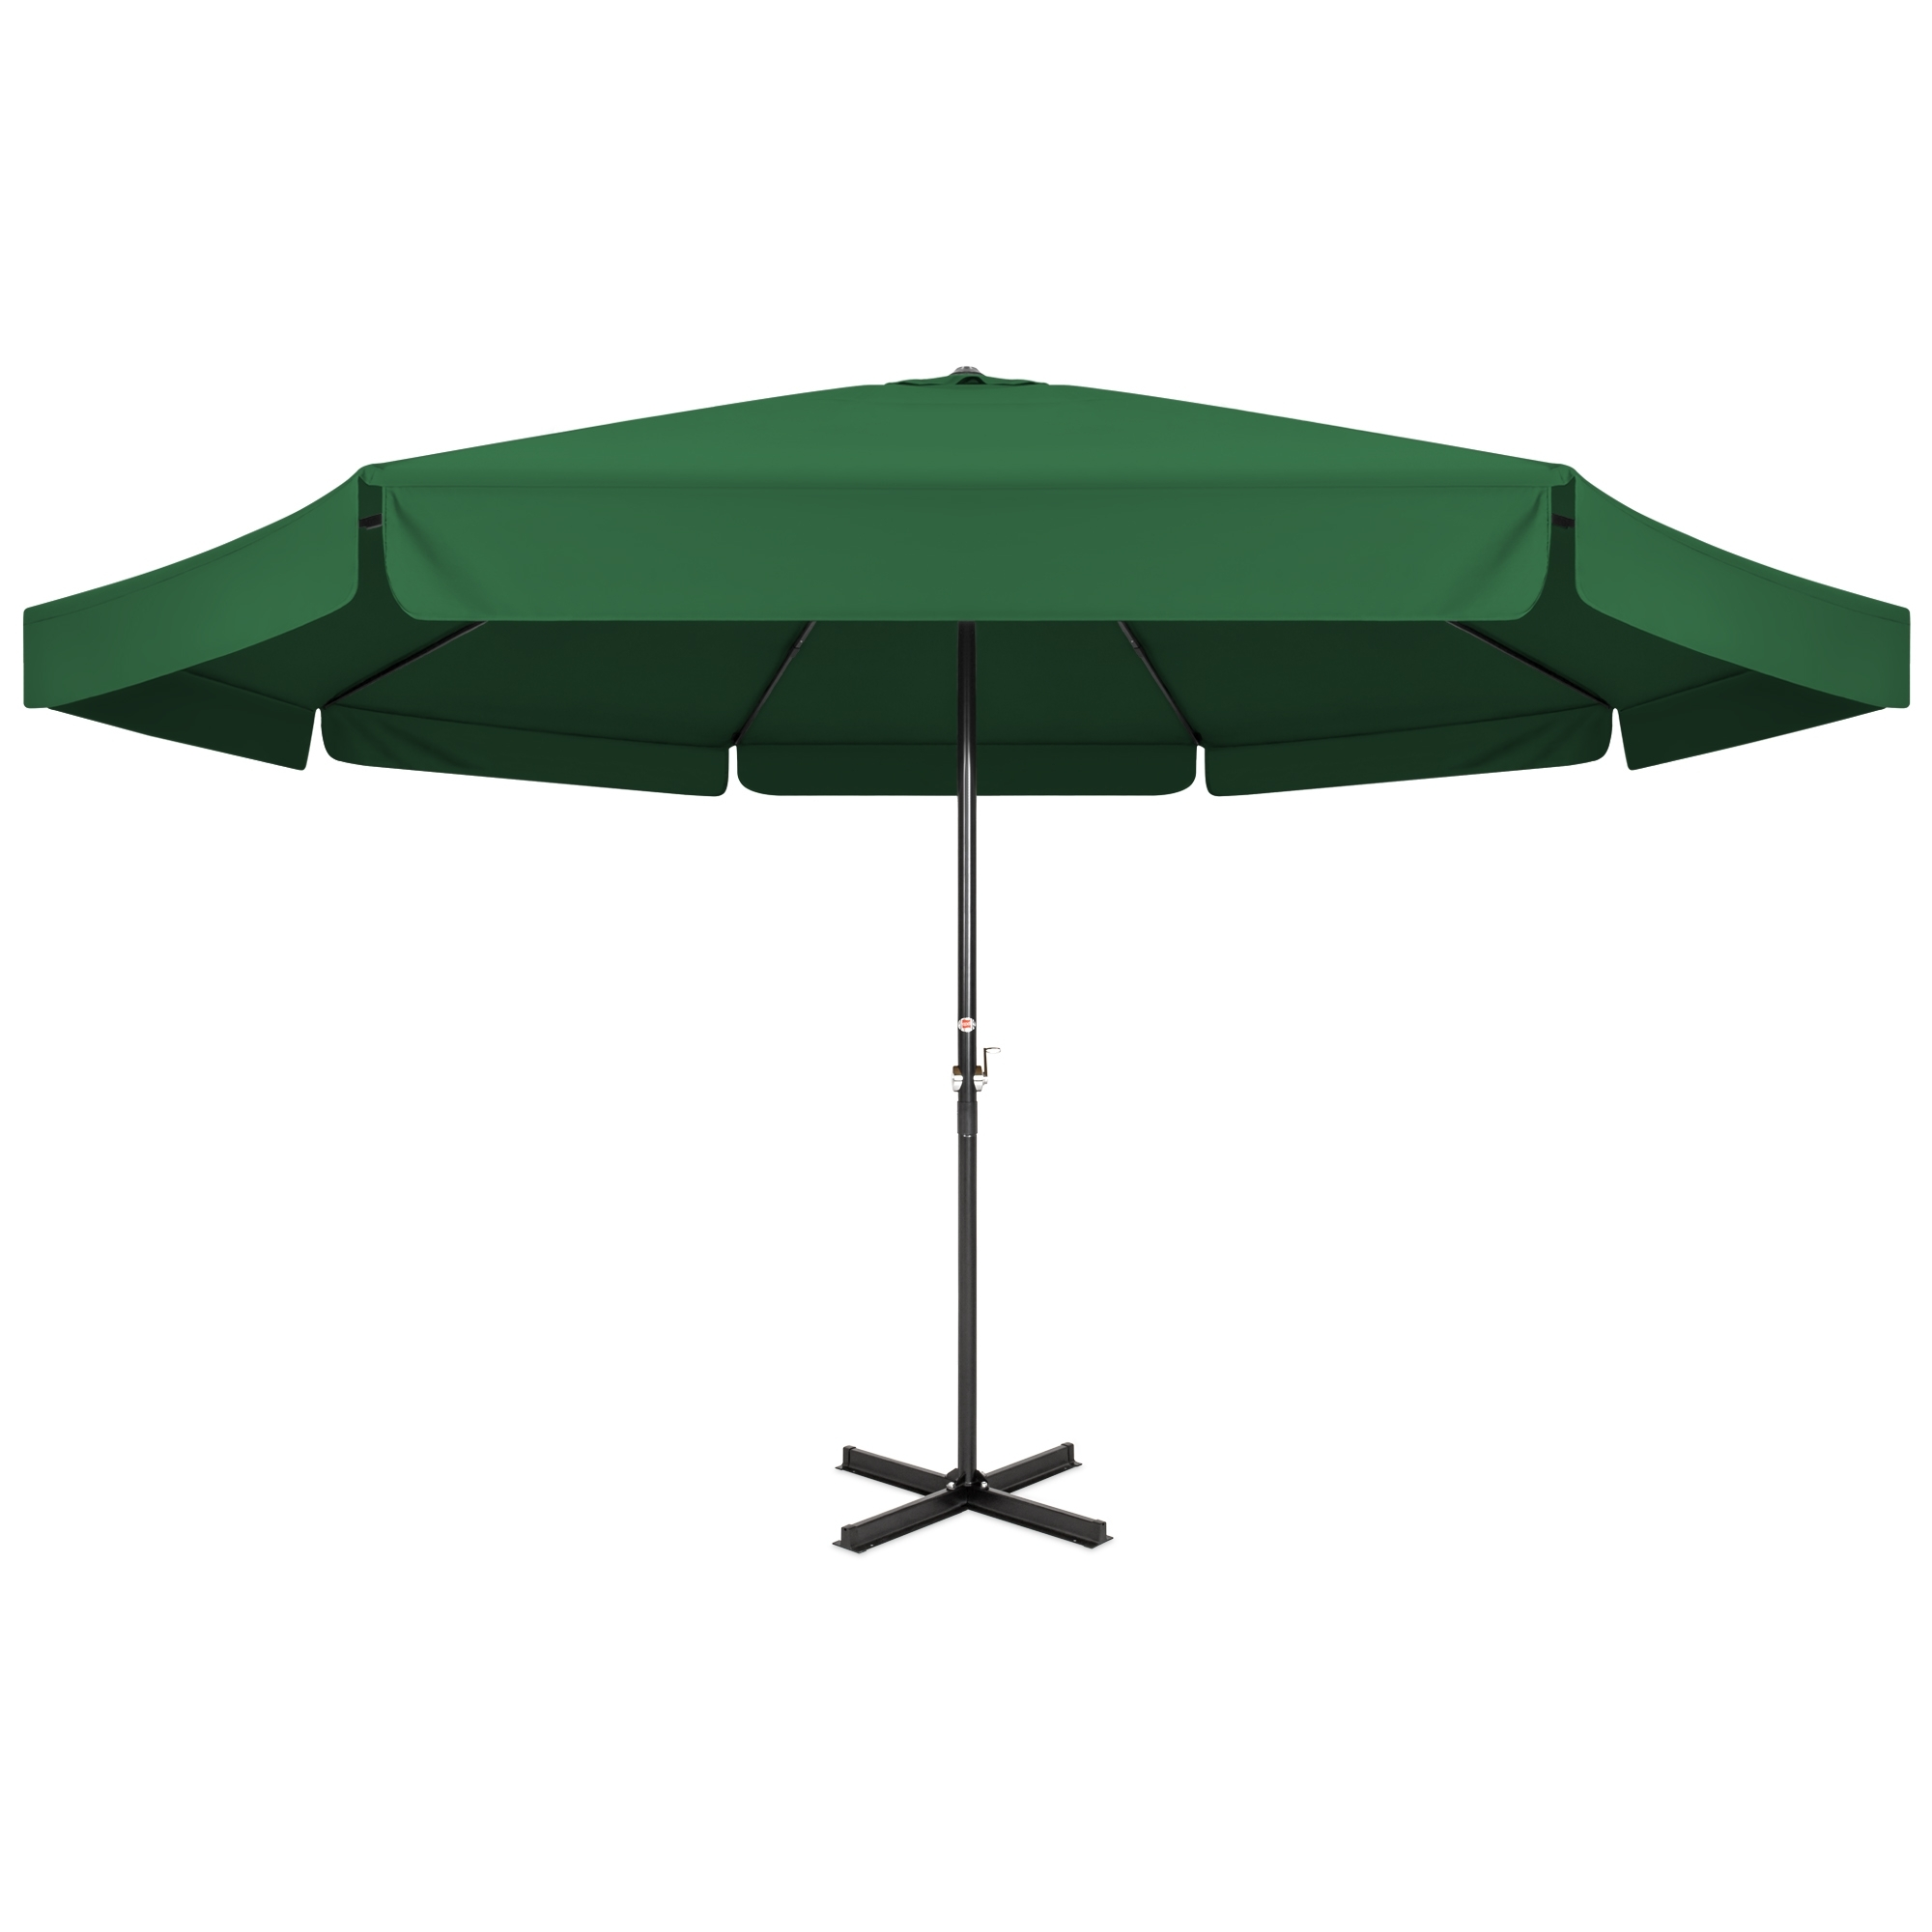 Bestchoiceproducts: Best Choice Products 16Ft Outdoor Patio Drape Pertaining To Popular Drape Patio Umbrellas (View 2 of 20)